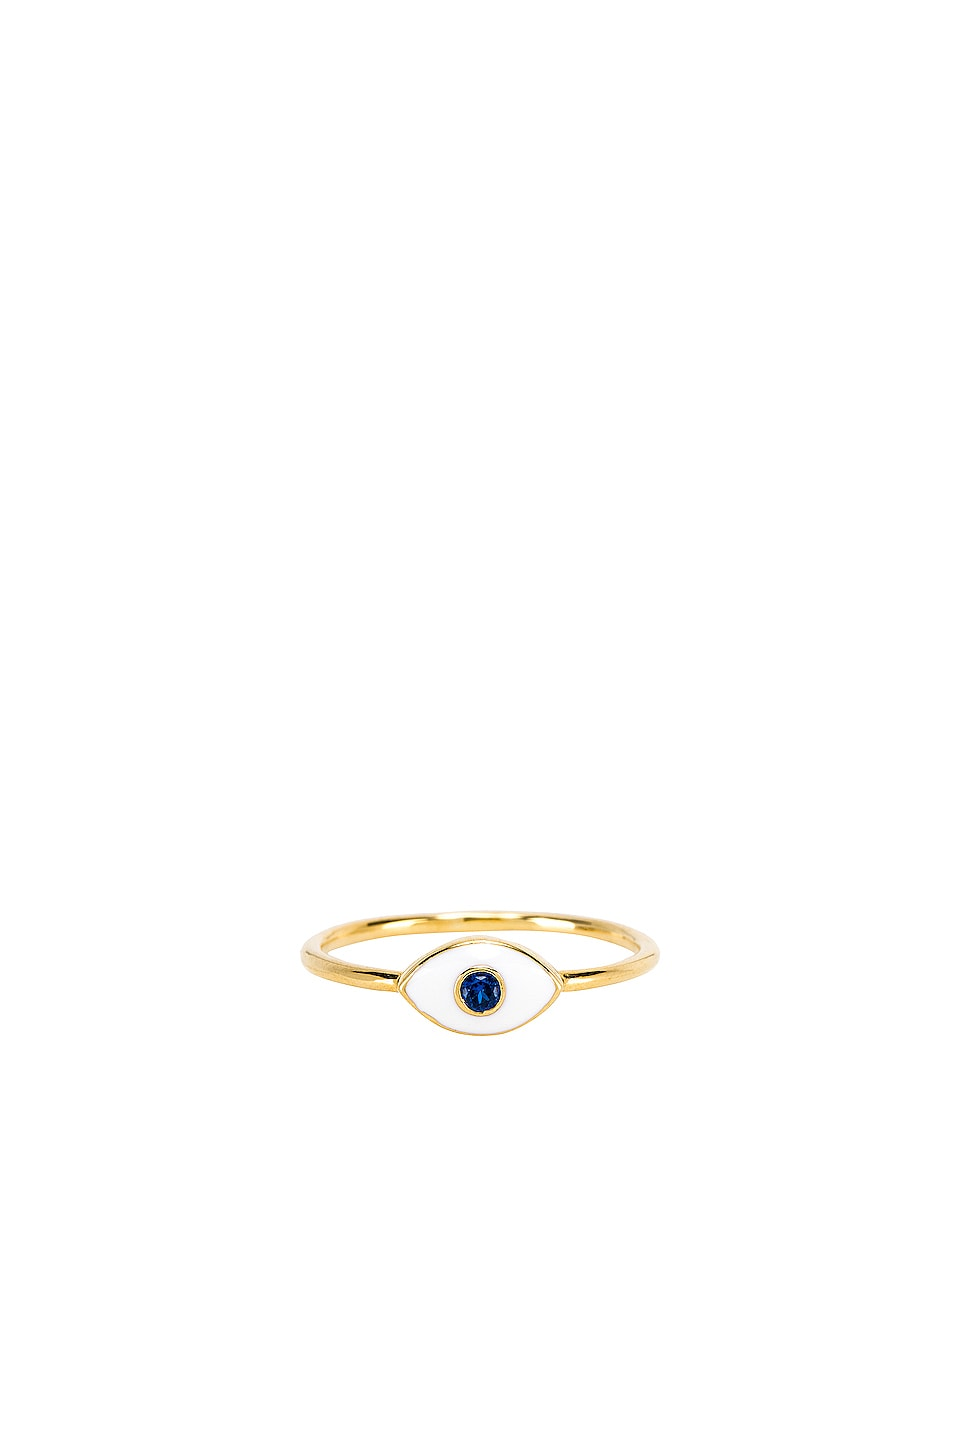 Natalie B Jewelry BAGUE EYE SEE YOU